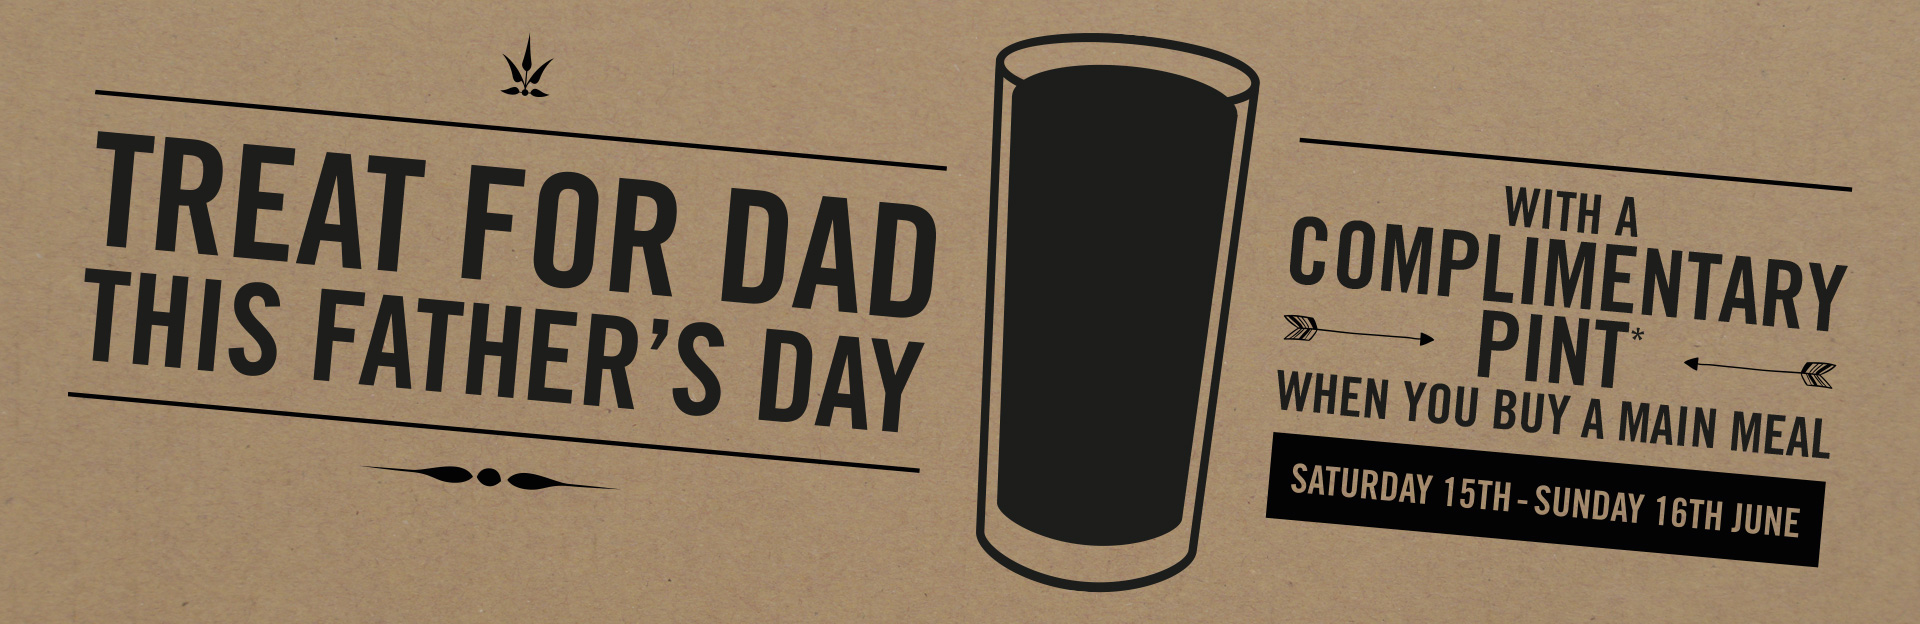 Father's Day at The Duke of Wellington